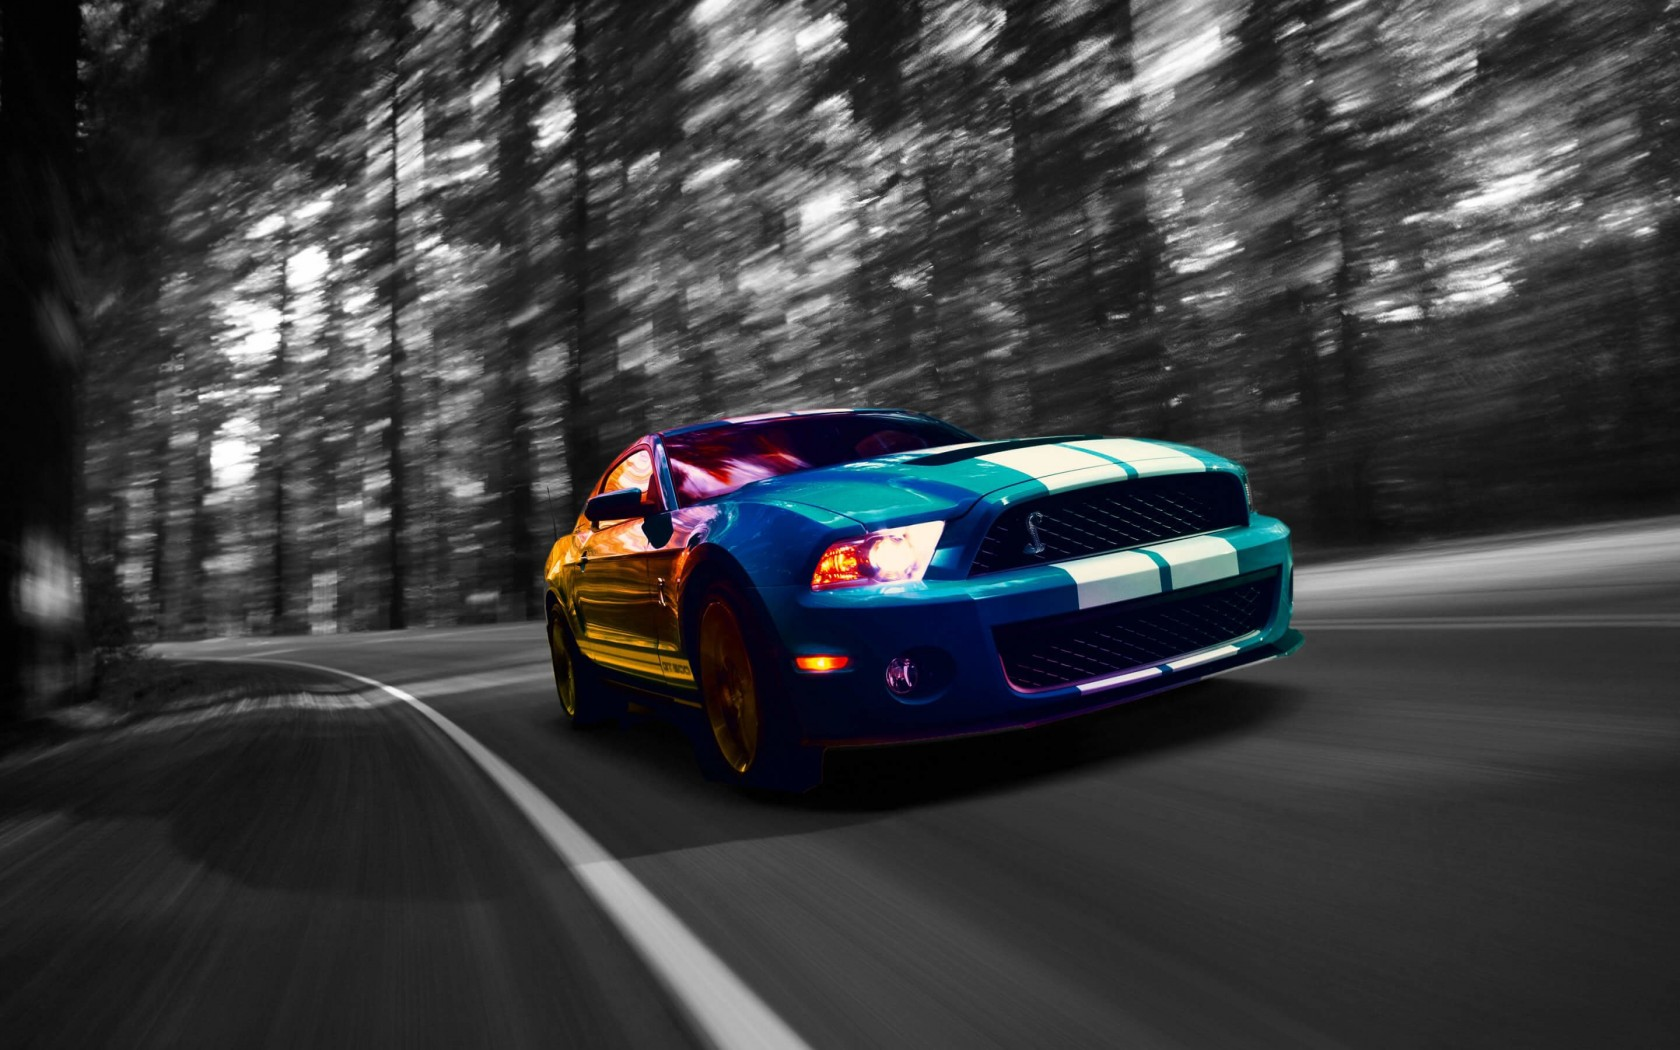 Ford Mustang Shelby GT500 Wallpaper for Desktop 1680x1050